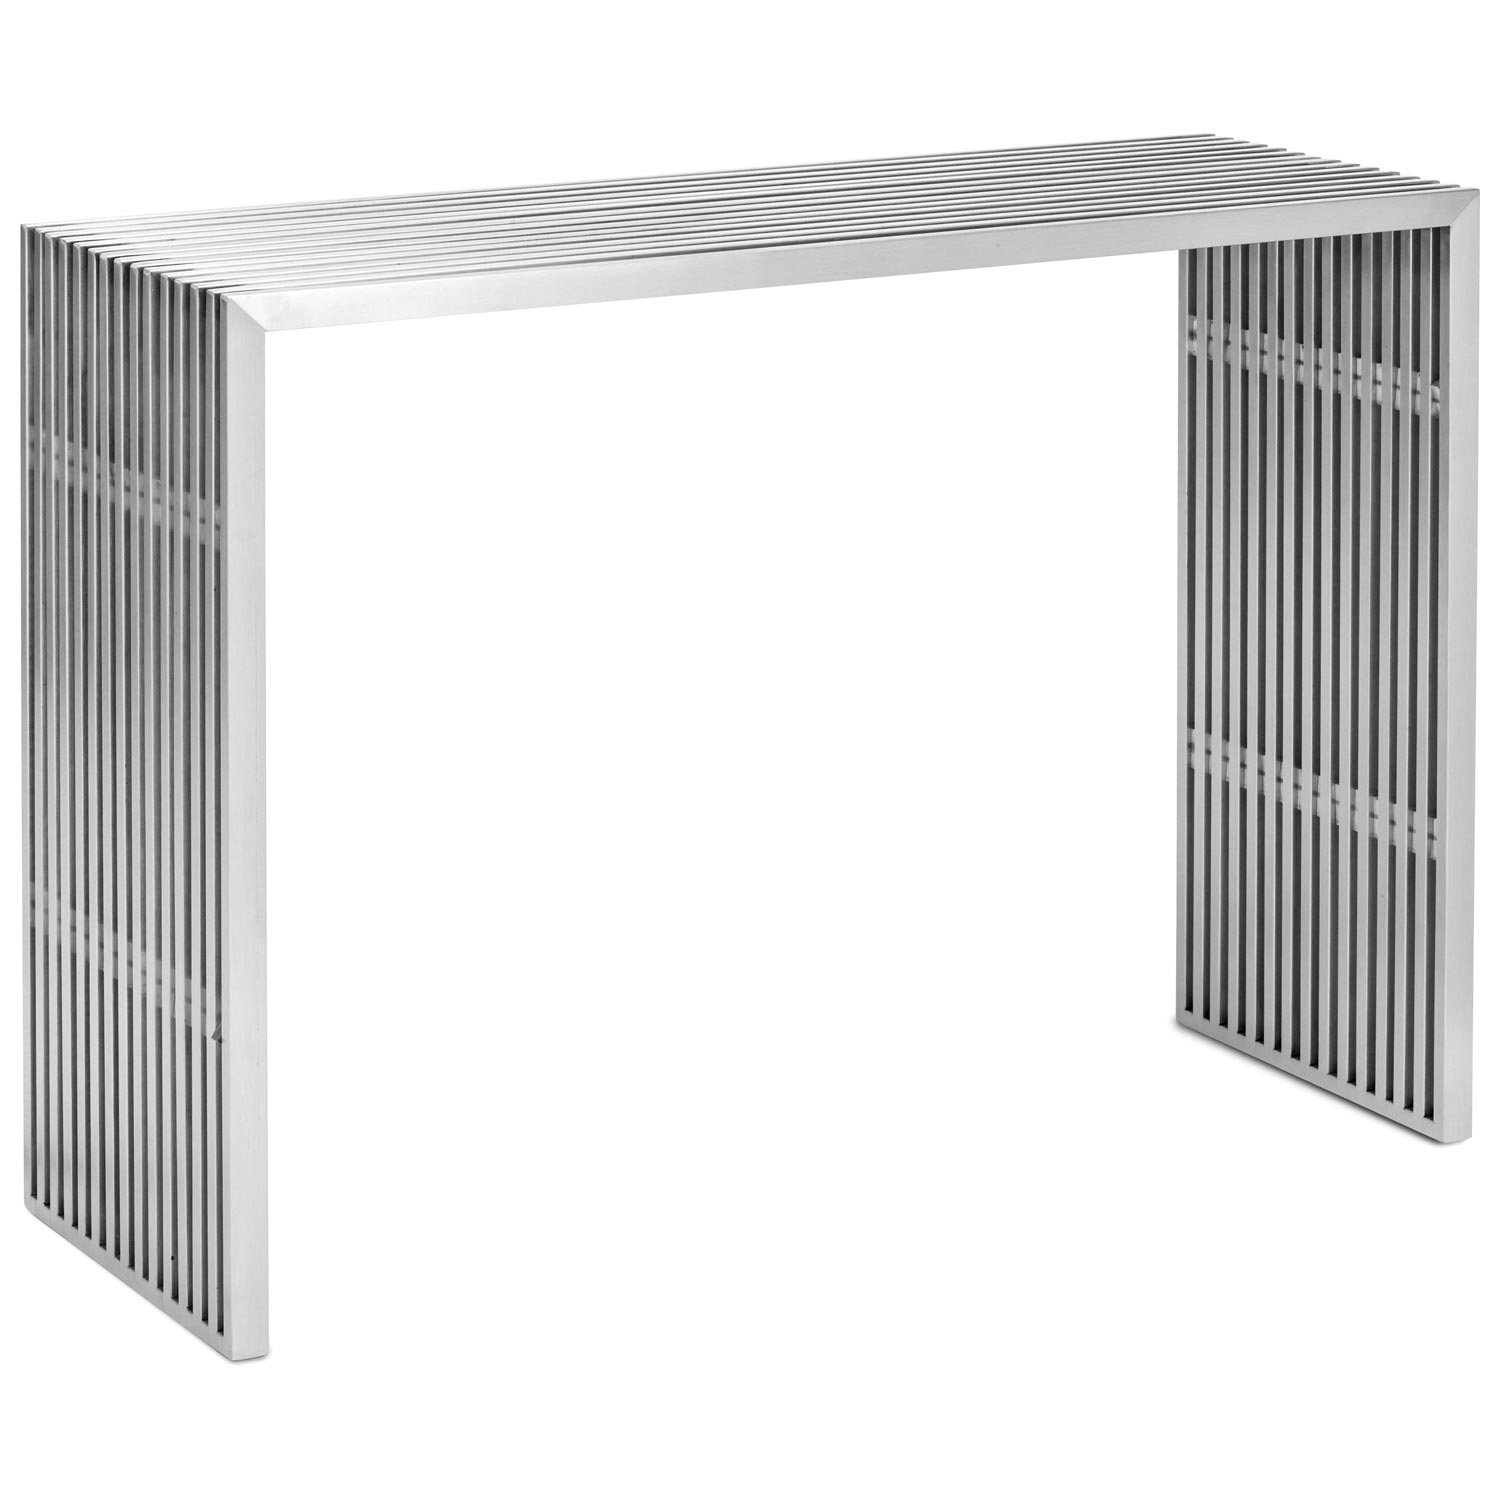 Novel Console Table - Stainless Steel - ZM-100085